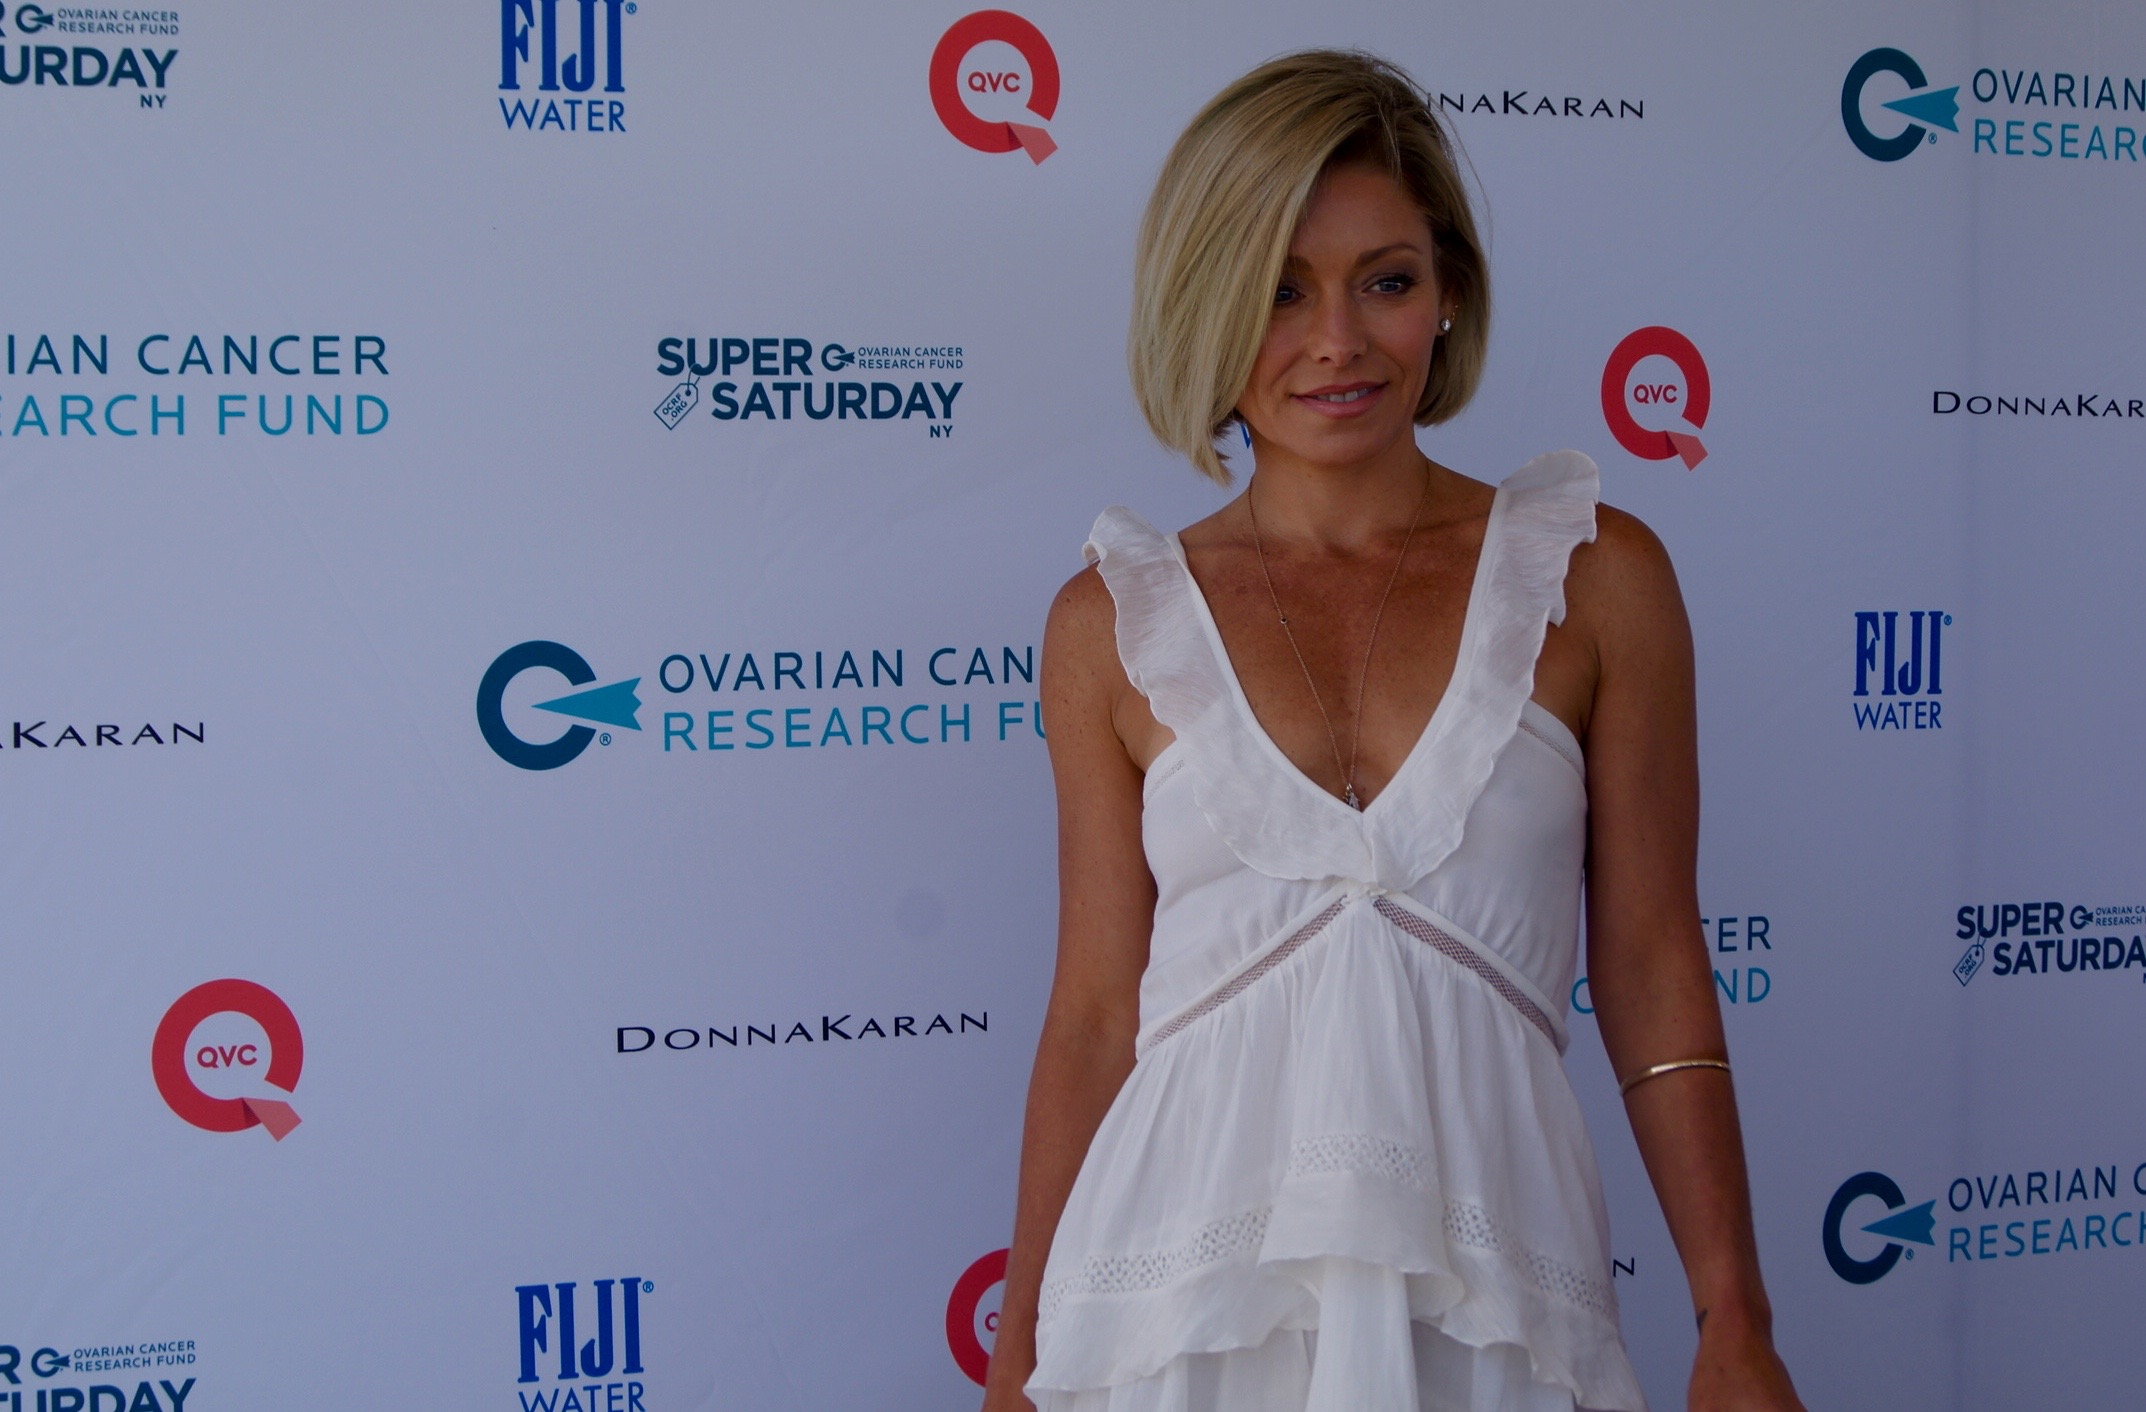 Kelly Ripa co-hosted OCRF's Super Saturday 2015 with Donna Karan. image: bridget shirvell